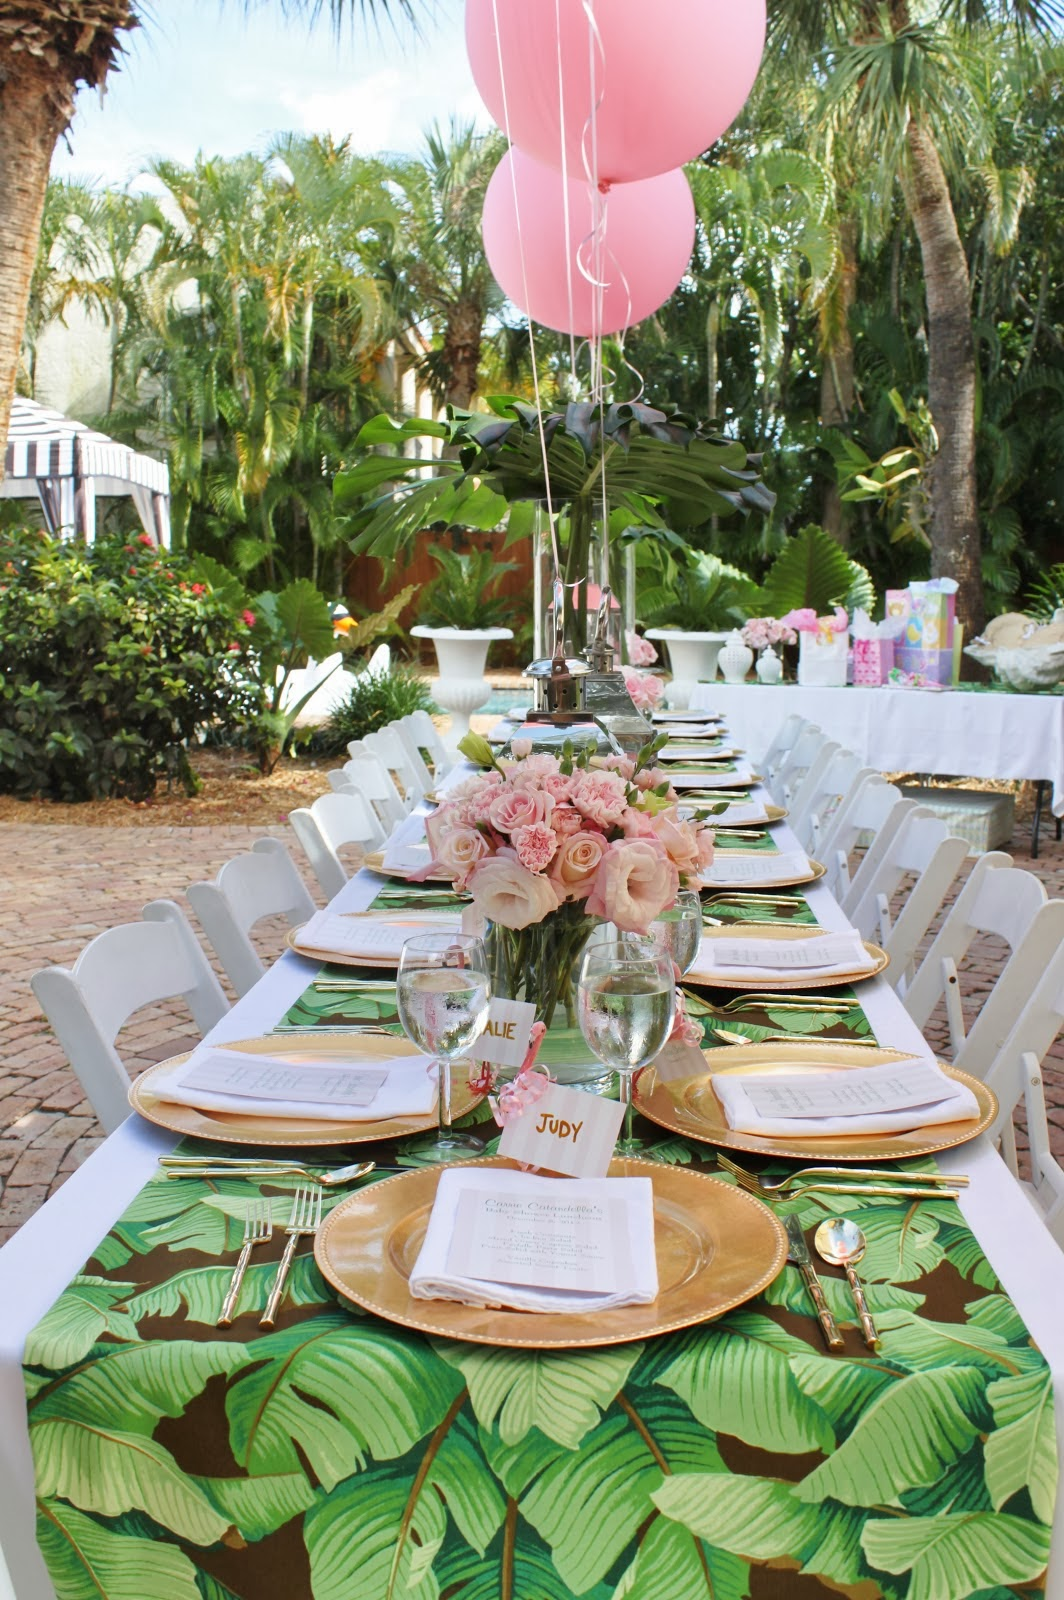 A Palm Beach Chic Baby Shower, By Luxe Report Designs